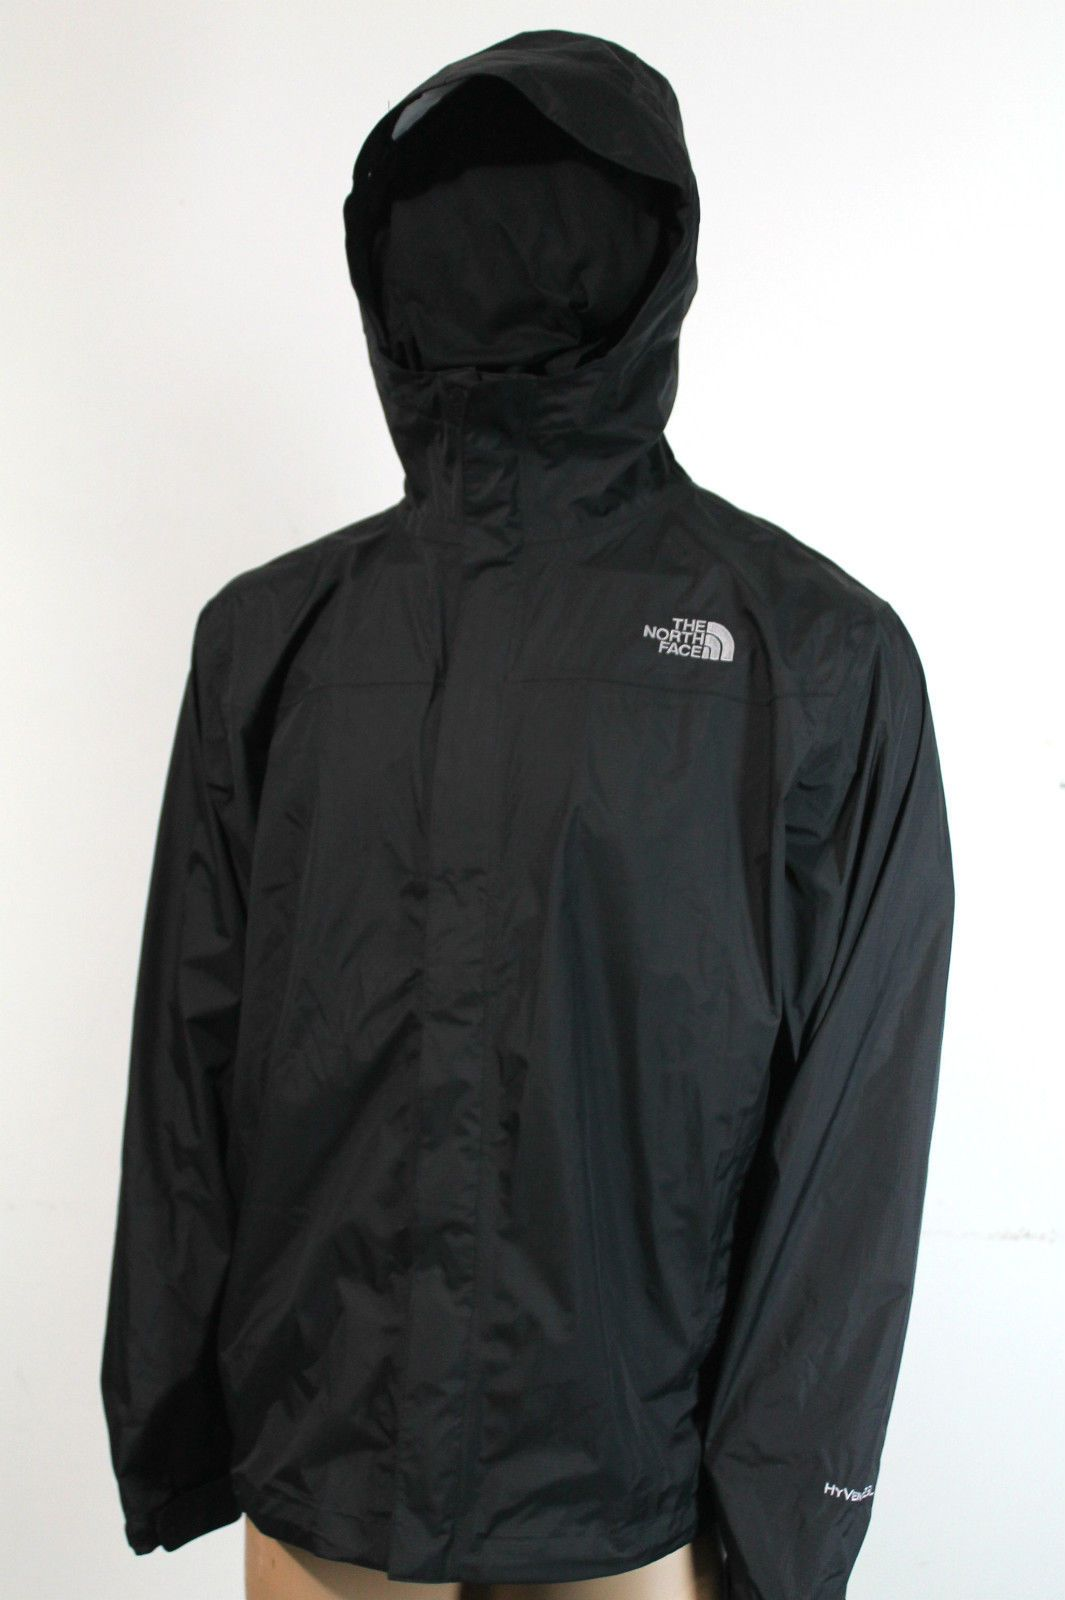 a55a4c8db The North Face Men's Venture Jacket 2 5L Hyvent Lightweight Hooded ...